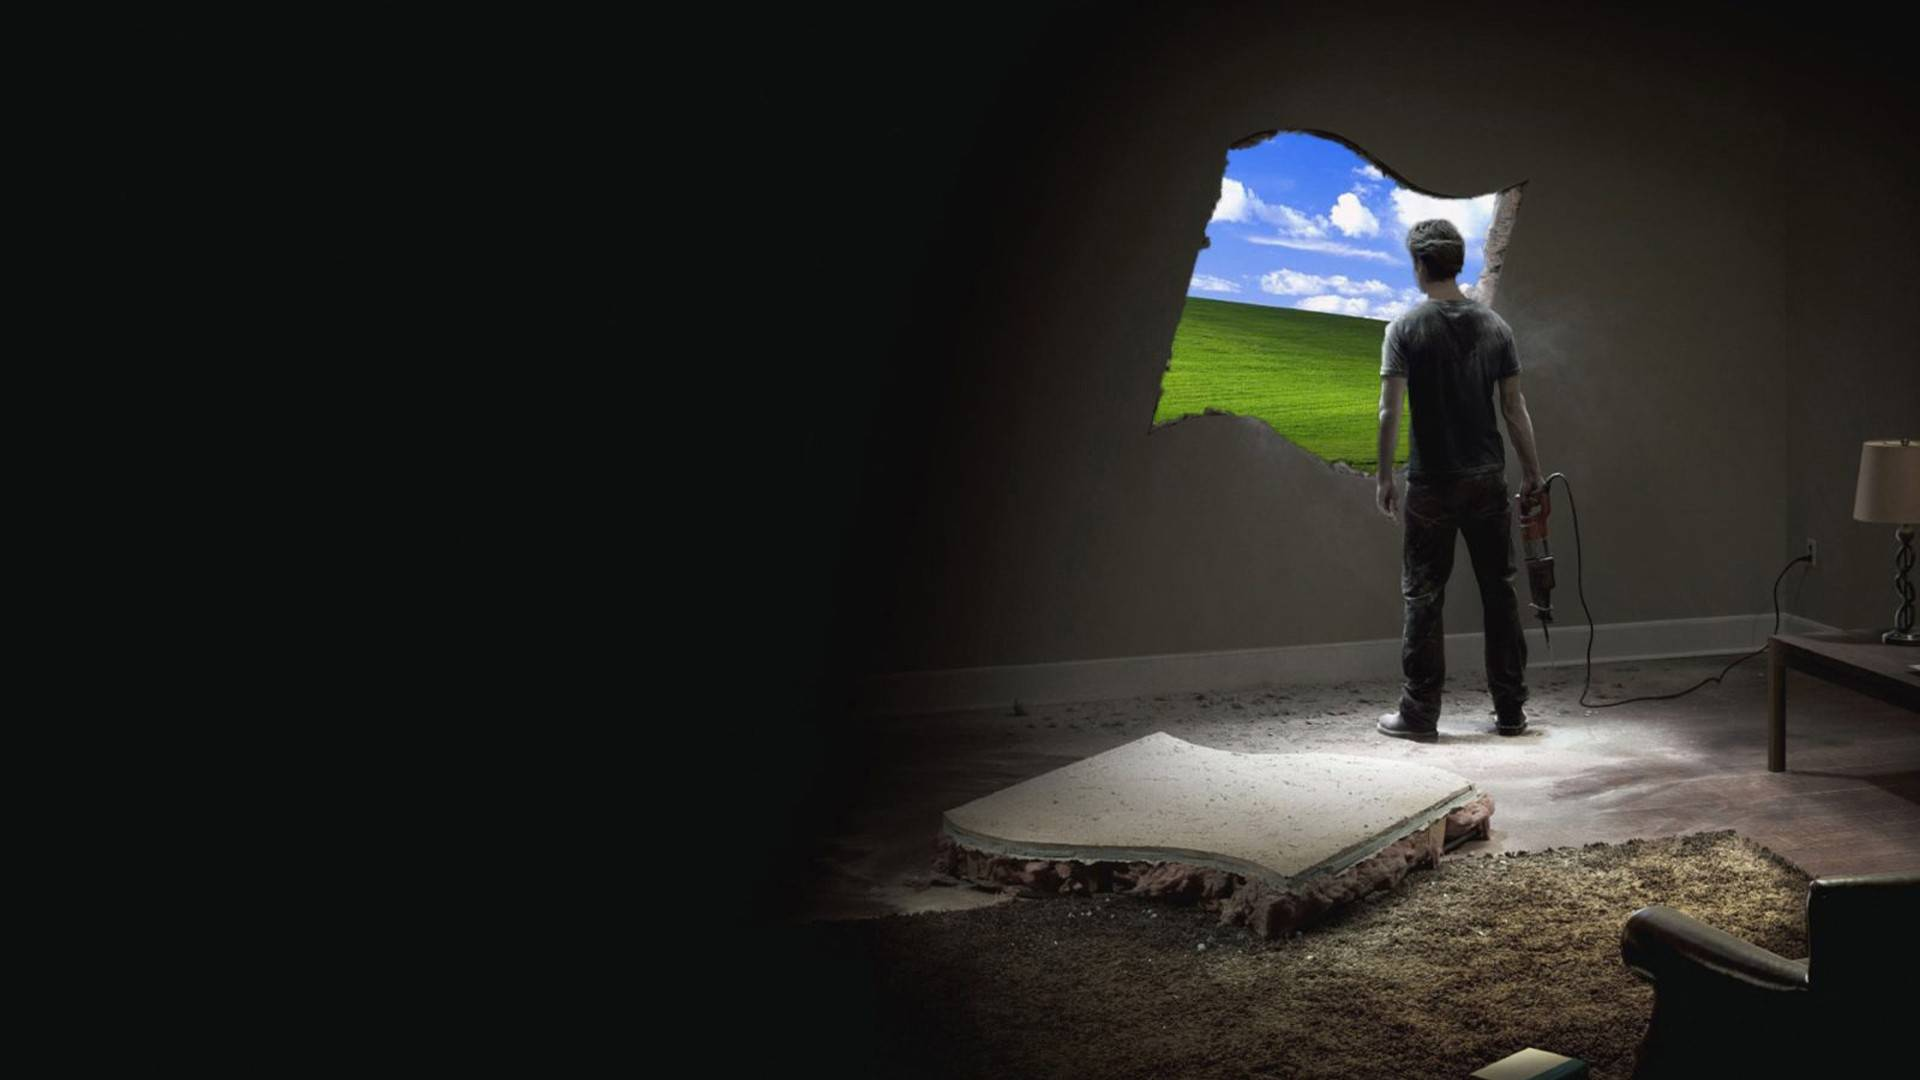 50 cool windows xp wallpapers in hd for free download windows xp wallpaper 7 voltagebd Gallery